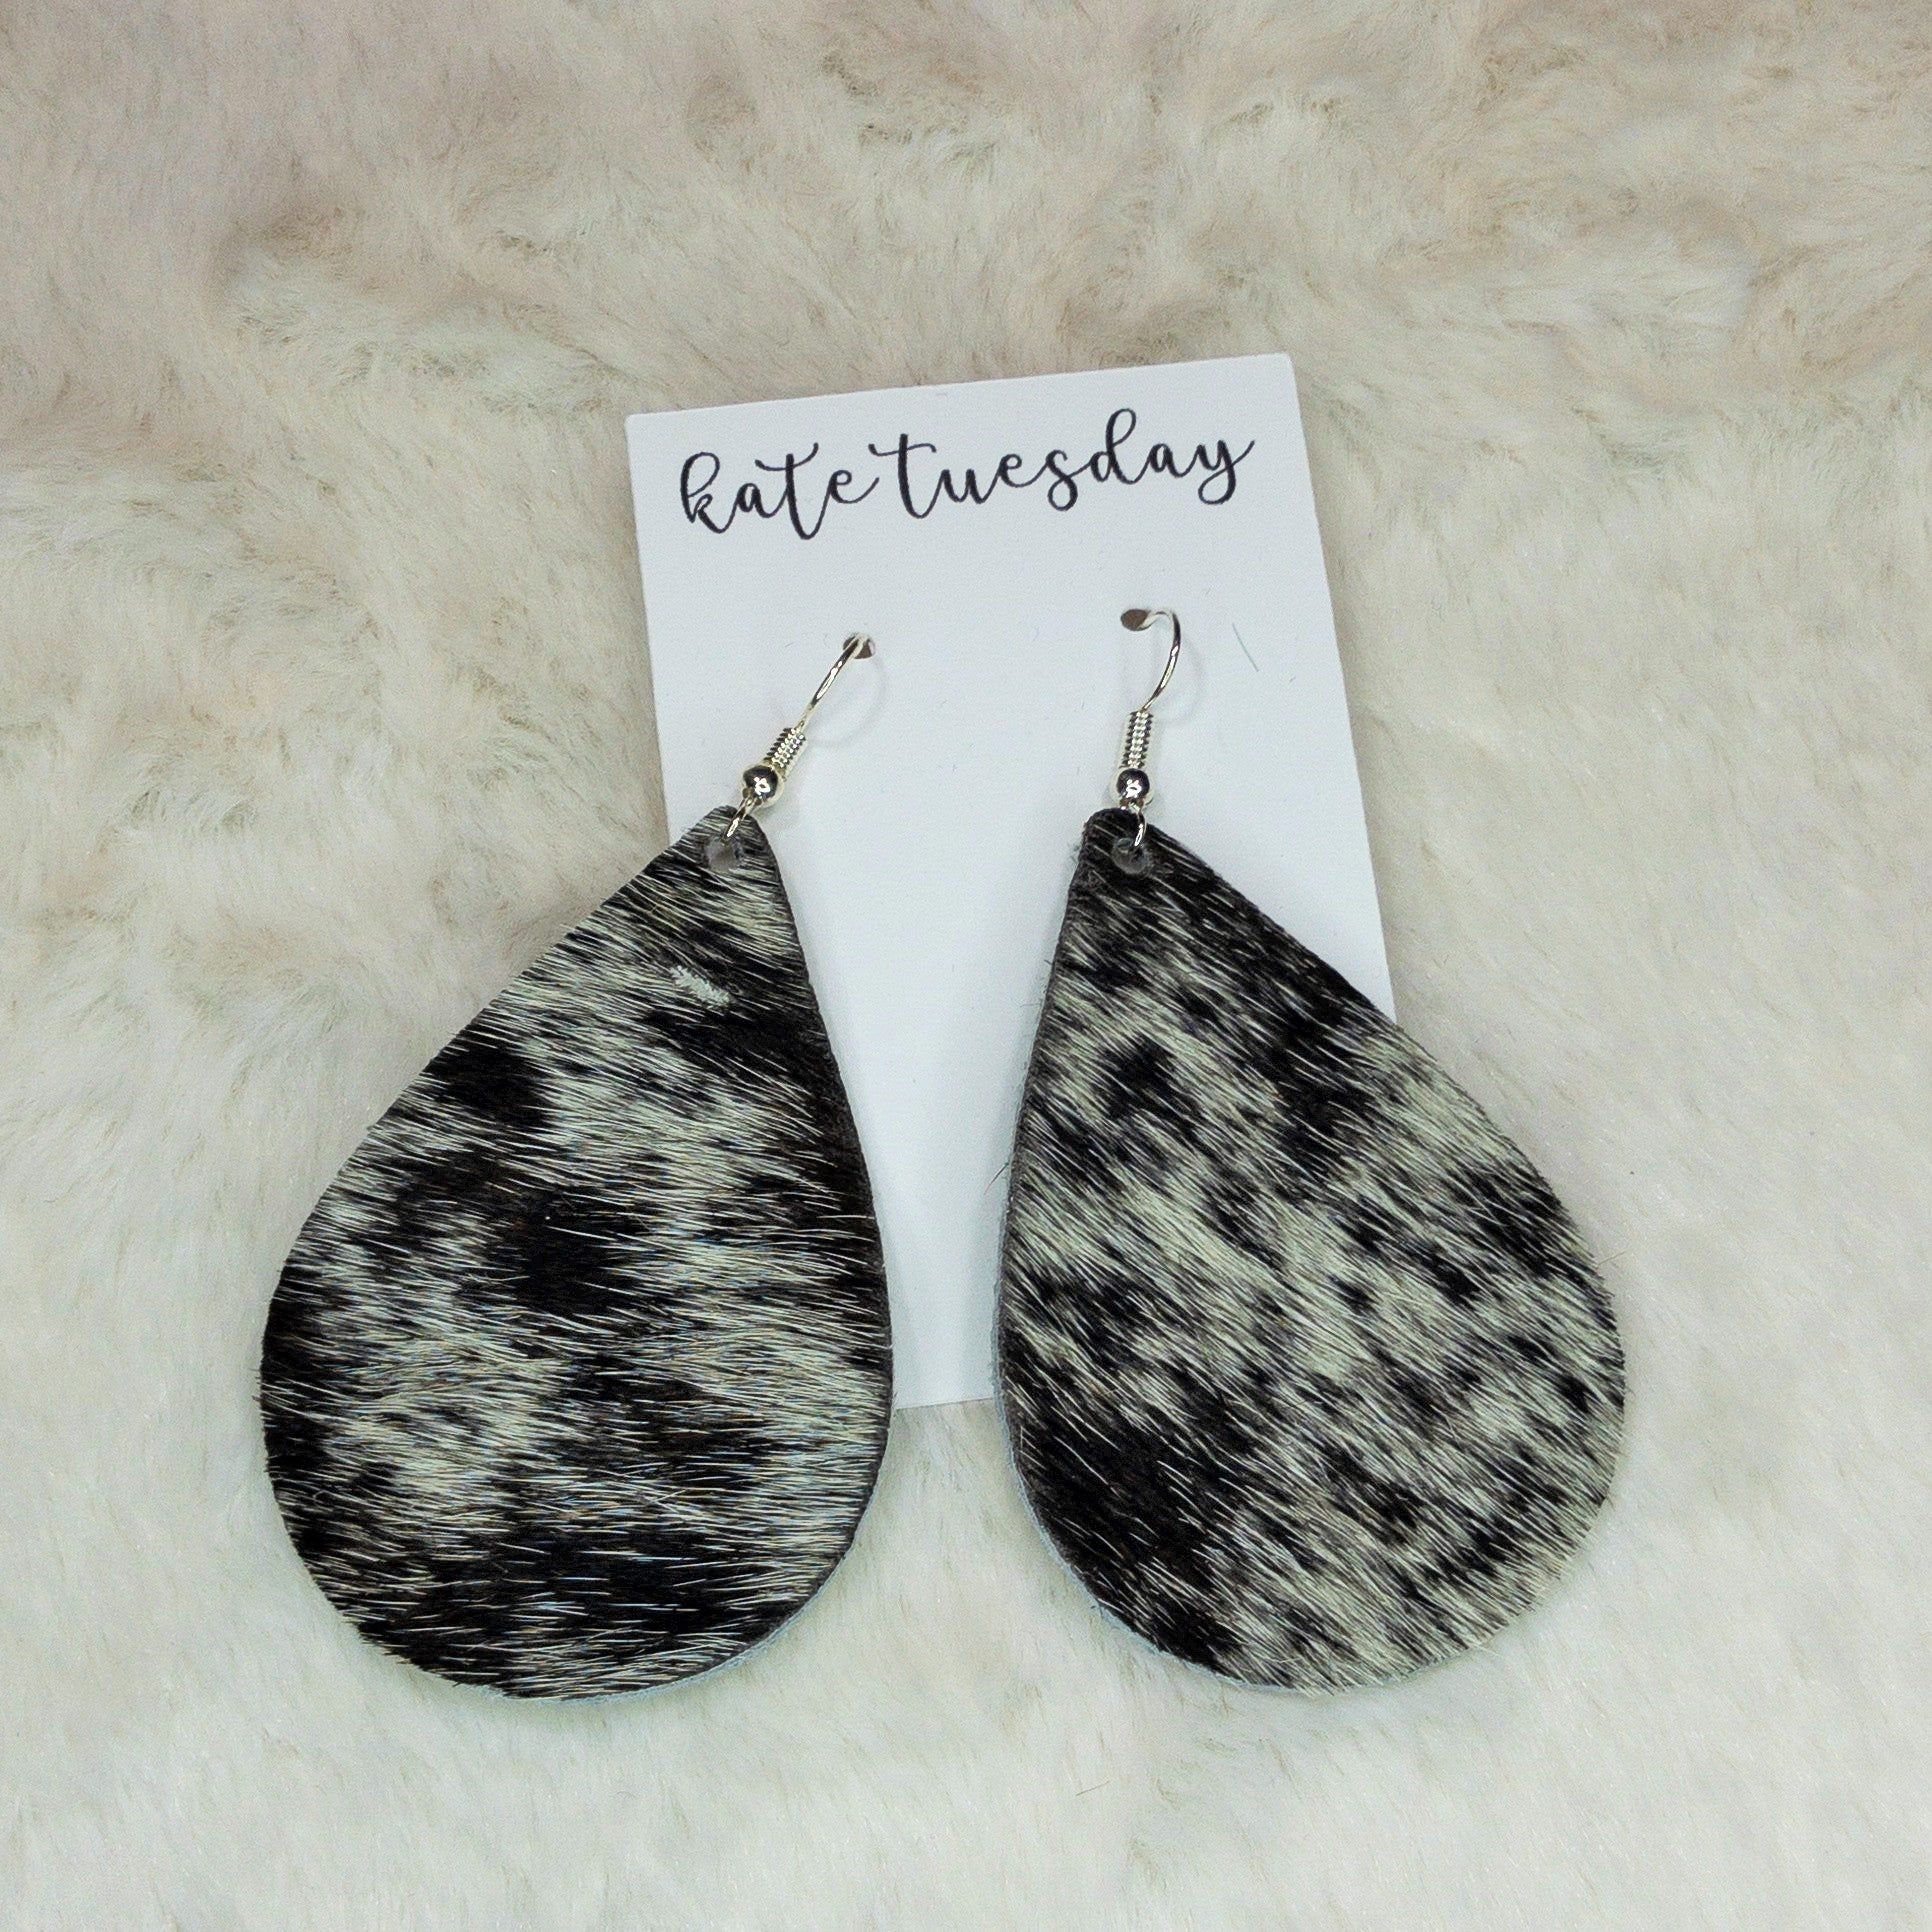 Kate Tuesday Hair On Leather Earrings - True Bliss Boutique